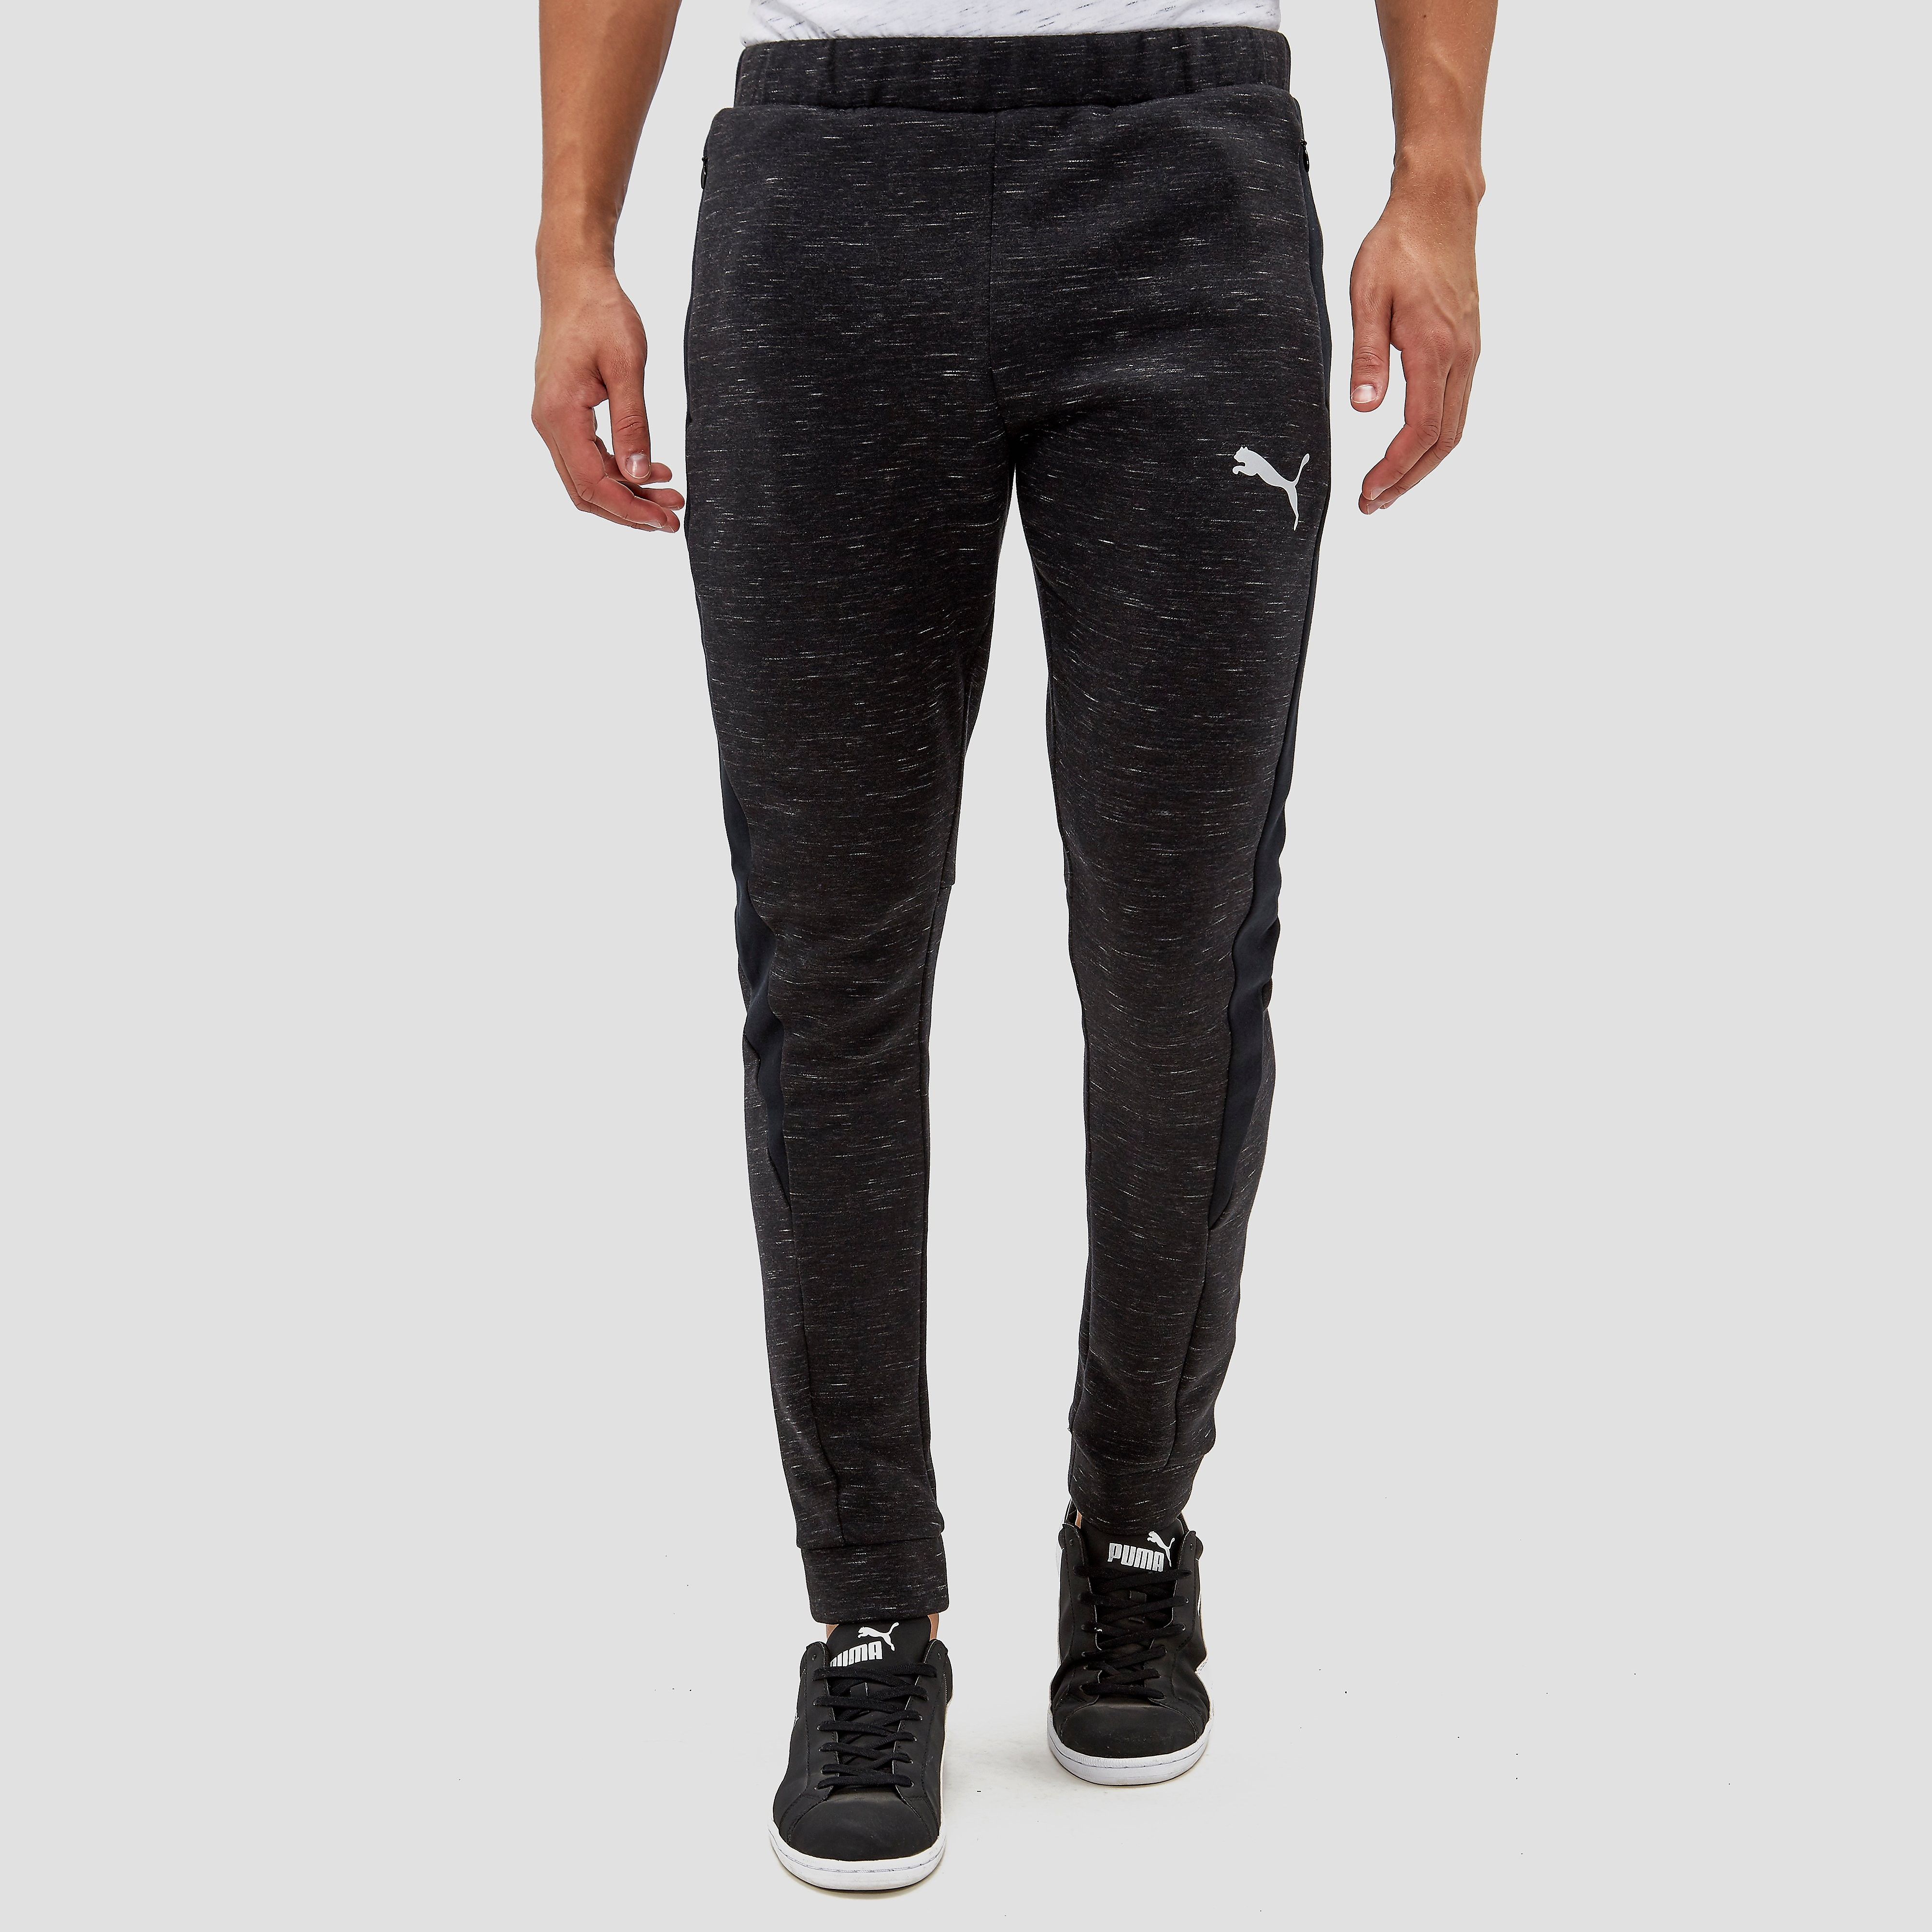 PUMA EVOSTRIPE SPACEKNIT JOGGINGBROEK